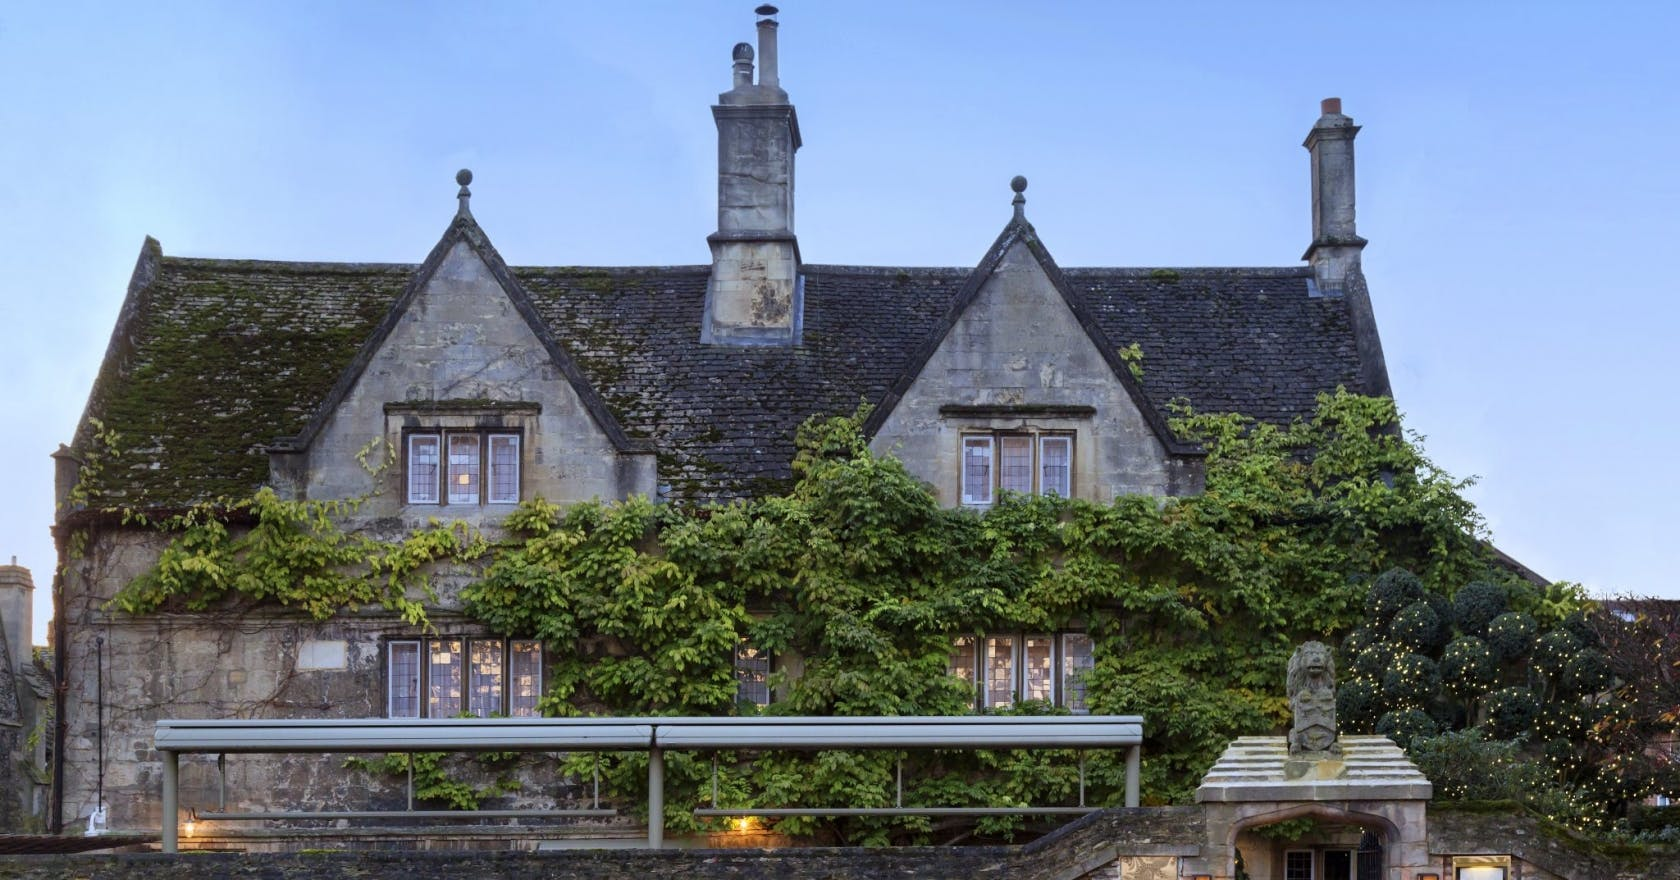 Book lovers – enjoy a cosy literary escape at this Oxford hideaway